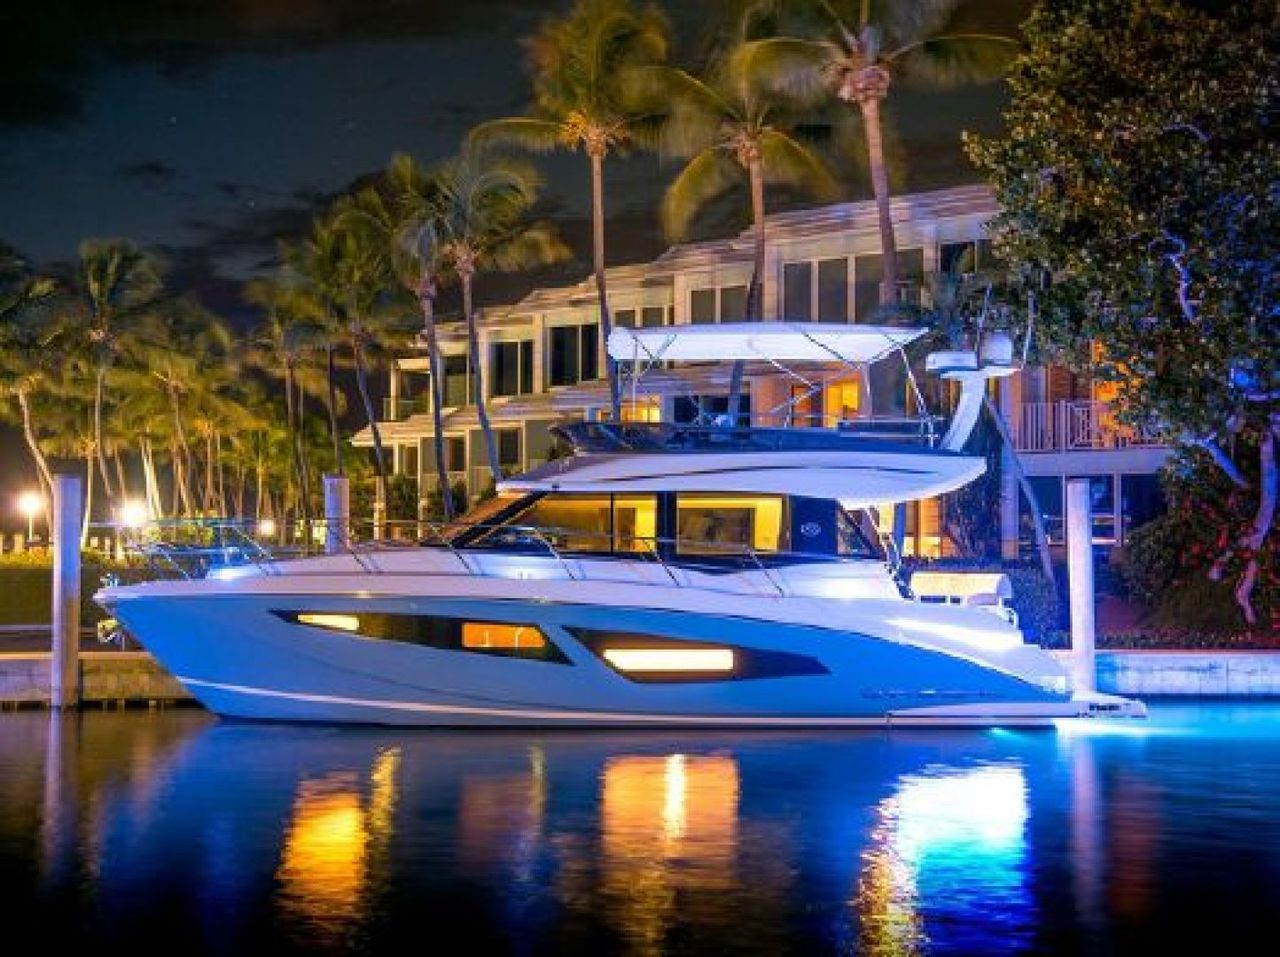 2018 Used Regal 42 Fly Motor Yacht For Sale - $625,000